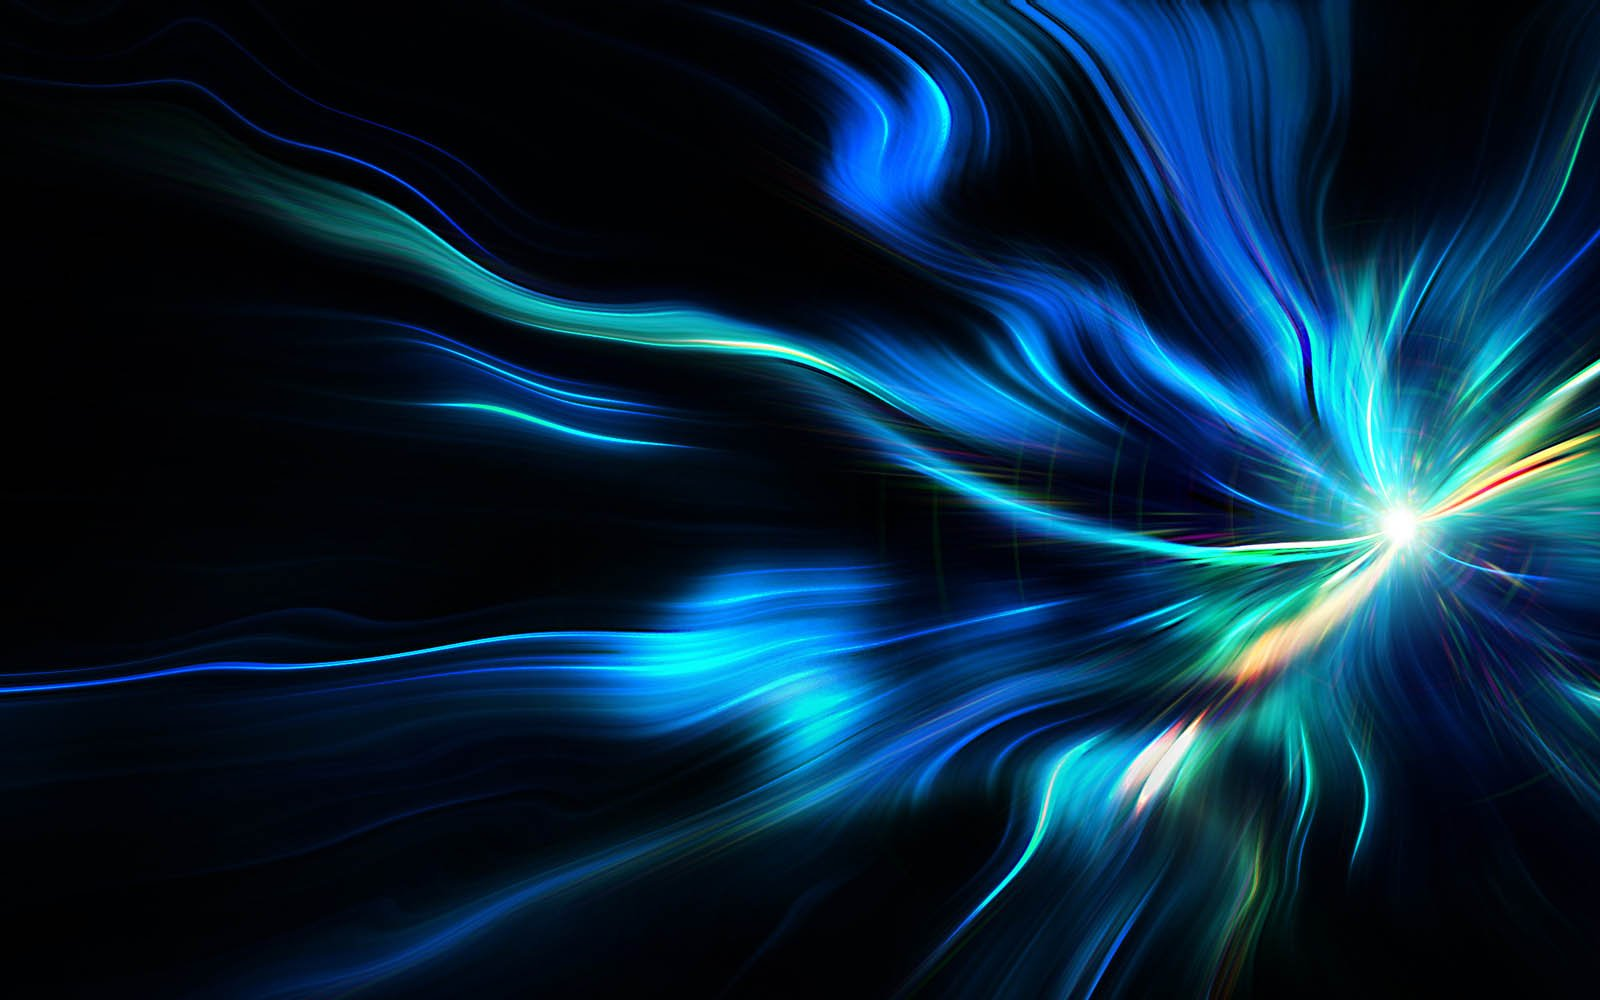 3D Wallpapers Shining 3DDesktop Wallpapers Shining 3D Desktop 1600x1000